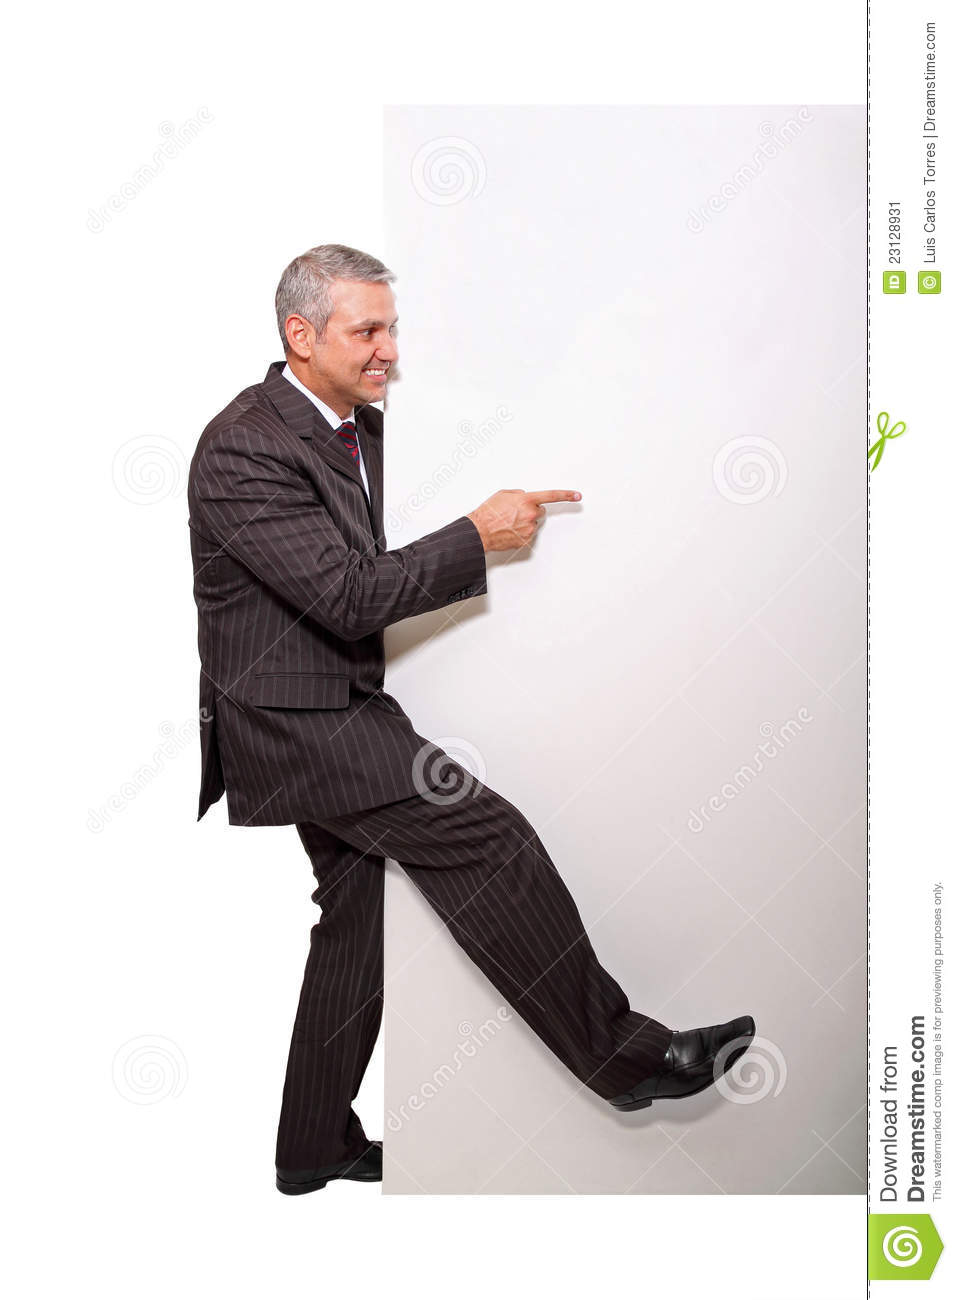 Businessman and placard